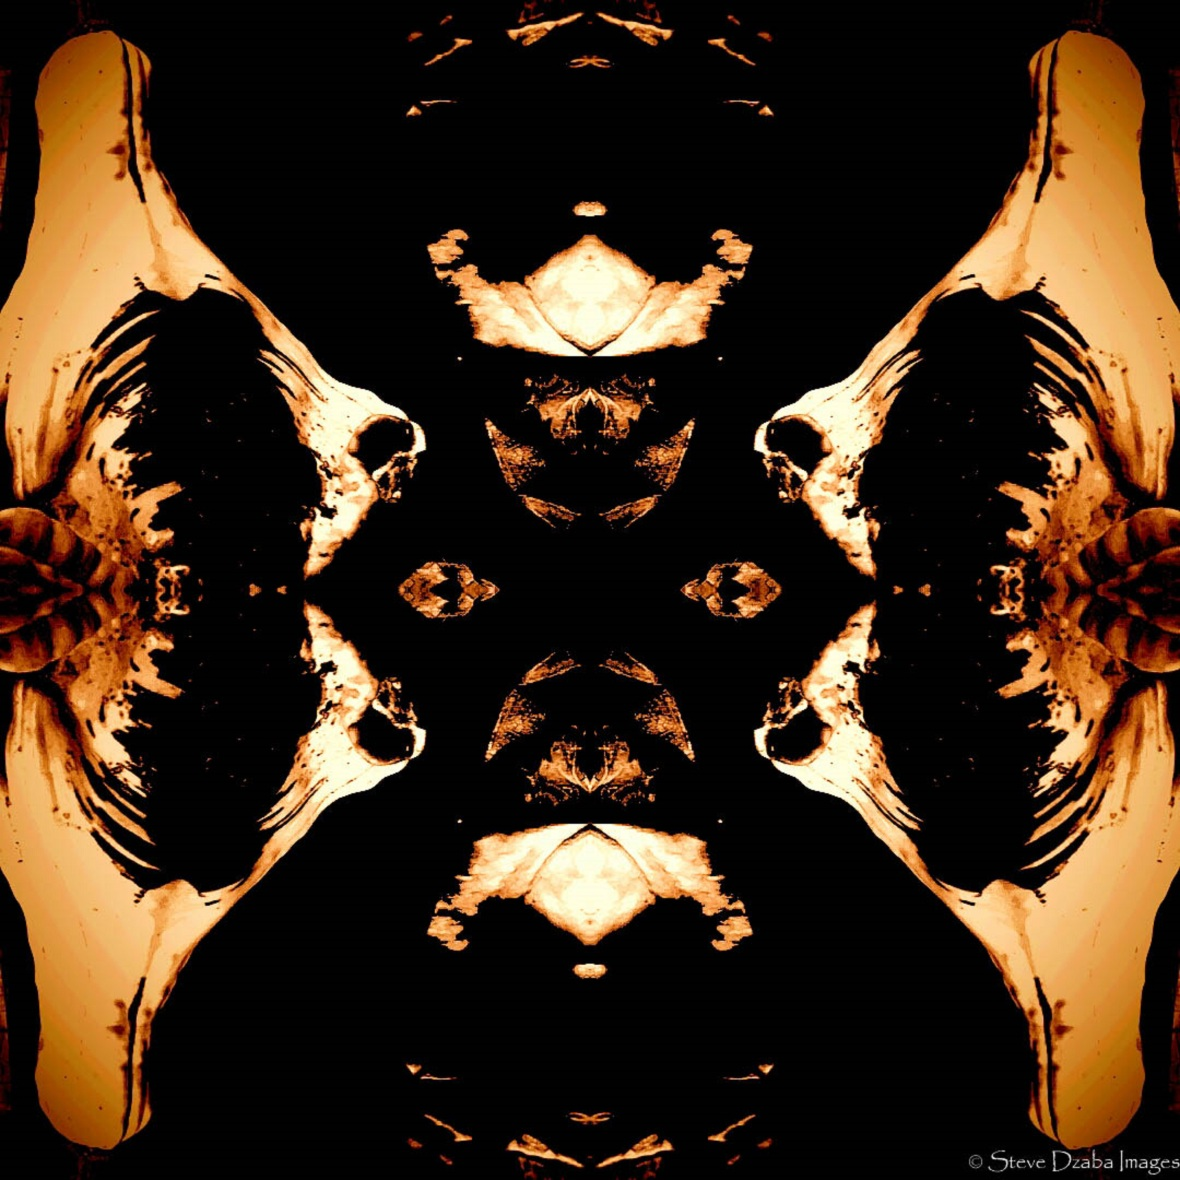 abstract-portrait-series-27